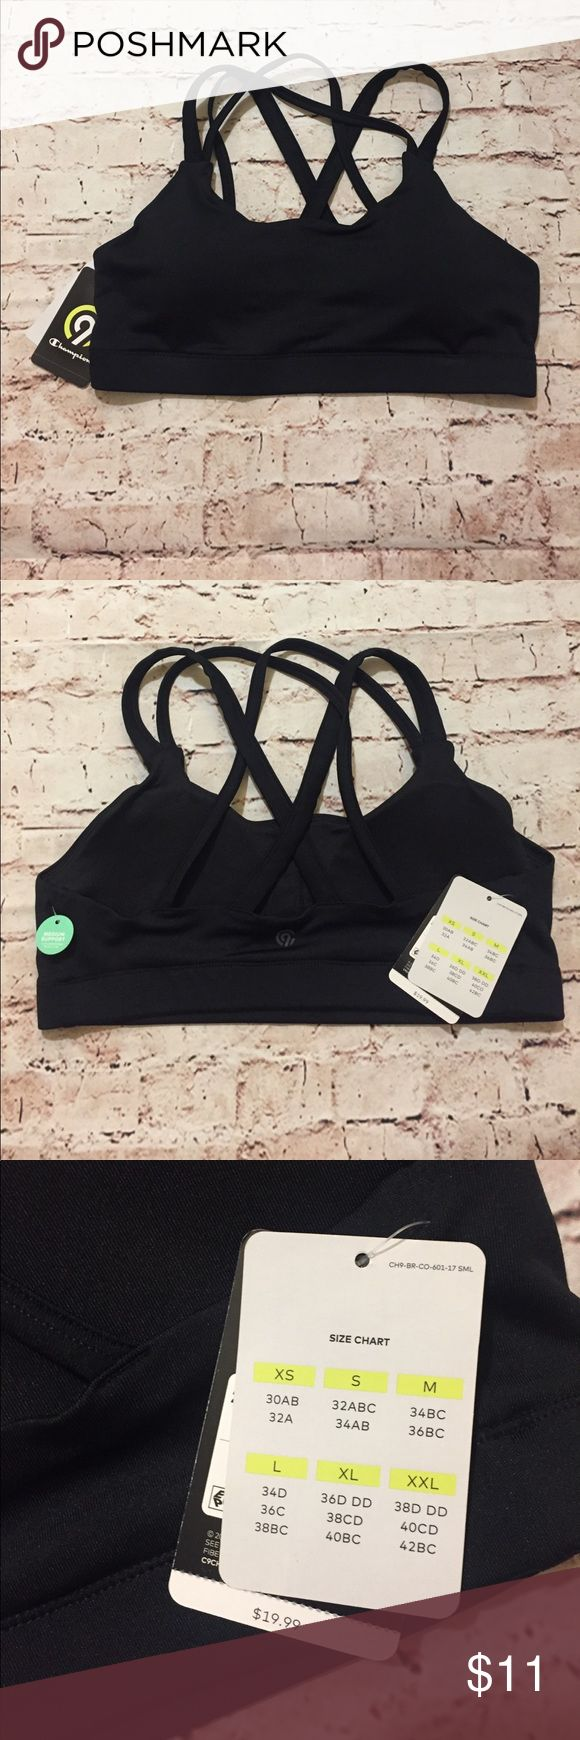 BRAND NEW Champion Sports Bra with tags Solid black sports bra that provides medium support.  Duo Dry, wicks moisture +dries fast and removable cups. Champion Intimates & Sleepwear Bras